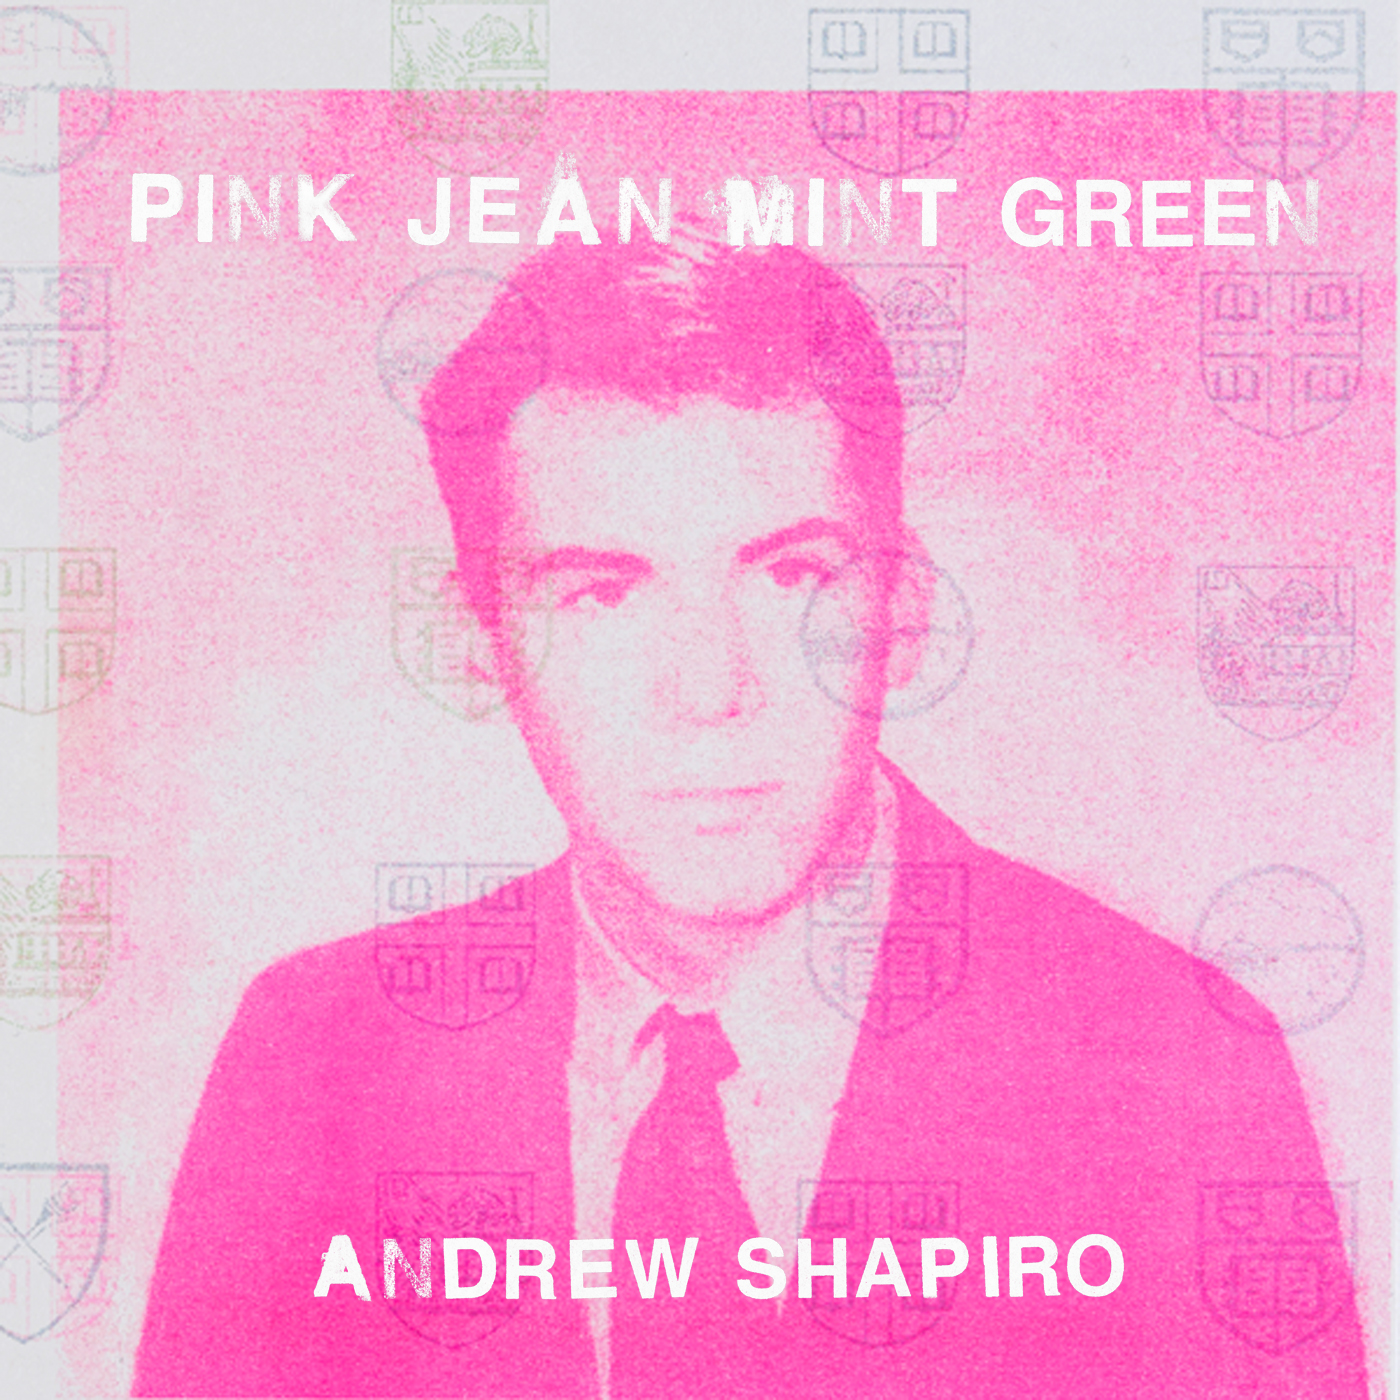 NEW: Pink Jean Mint Green - Release June 24, 2016 Audio CD  $15.00